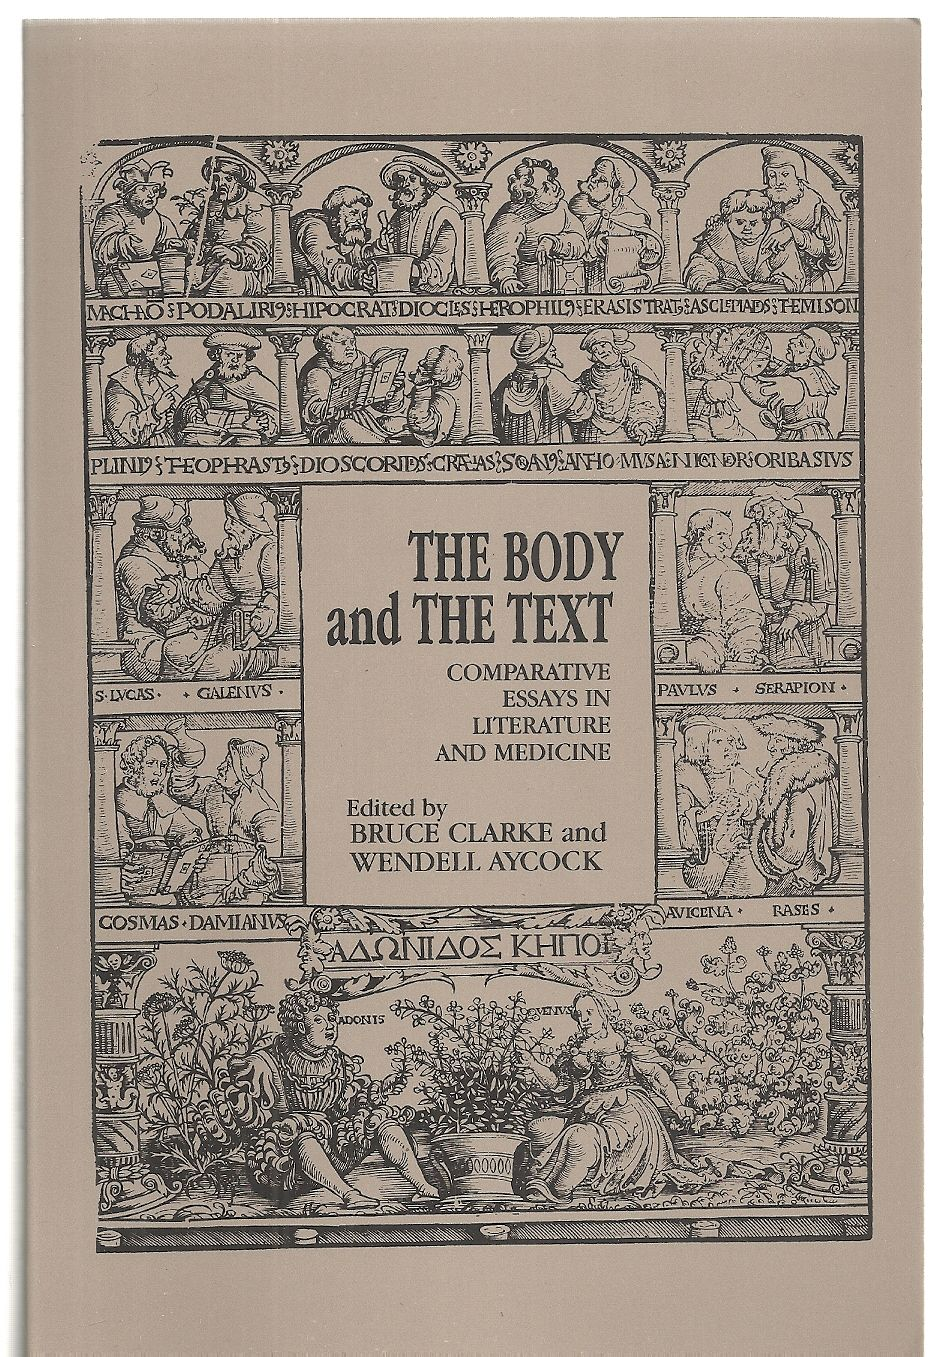 The Body and the Text: Comparative Essays in Literature and Language (Studies in Comparative Literature; 22), Bruce Clarke; Wendell Aycock